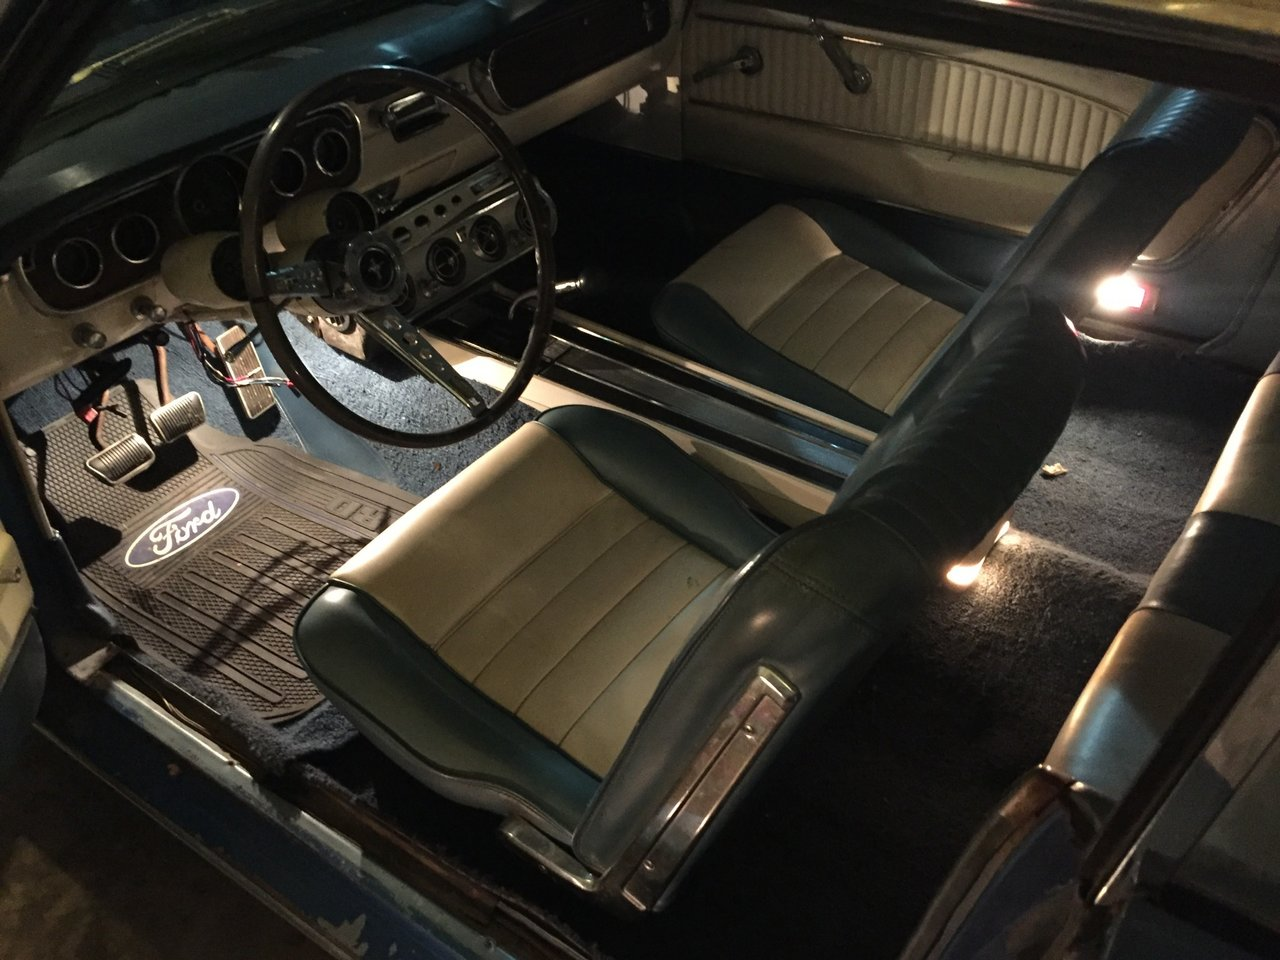 Pony Interior: 1965 Mustang A Code 4 Speed Factory Air Pony Interior Equalock